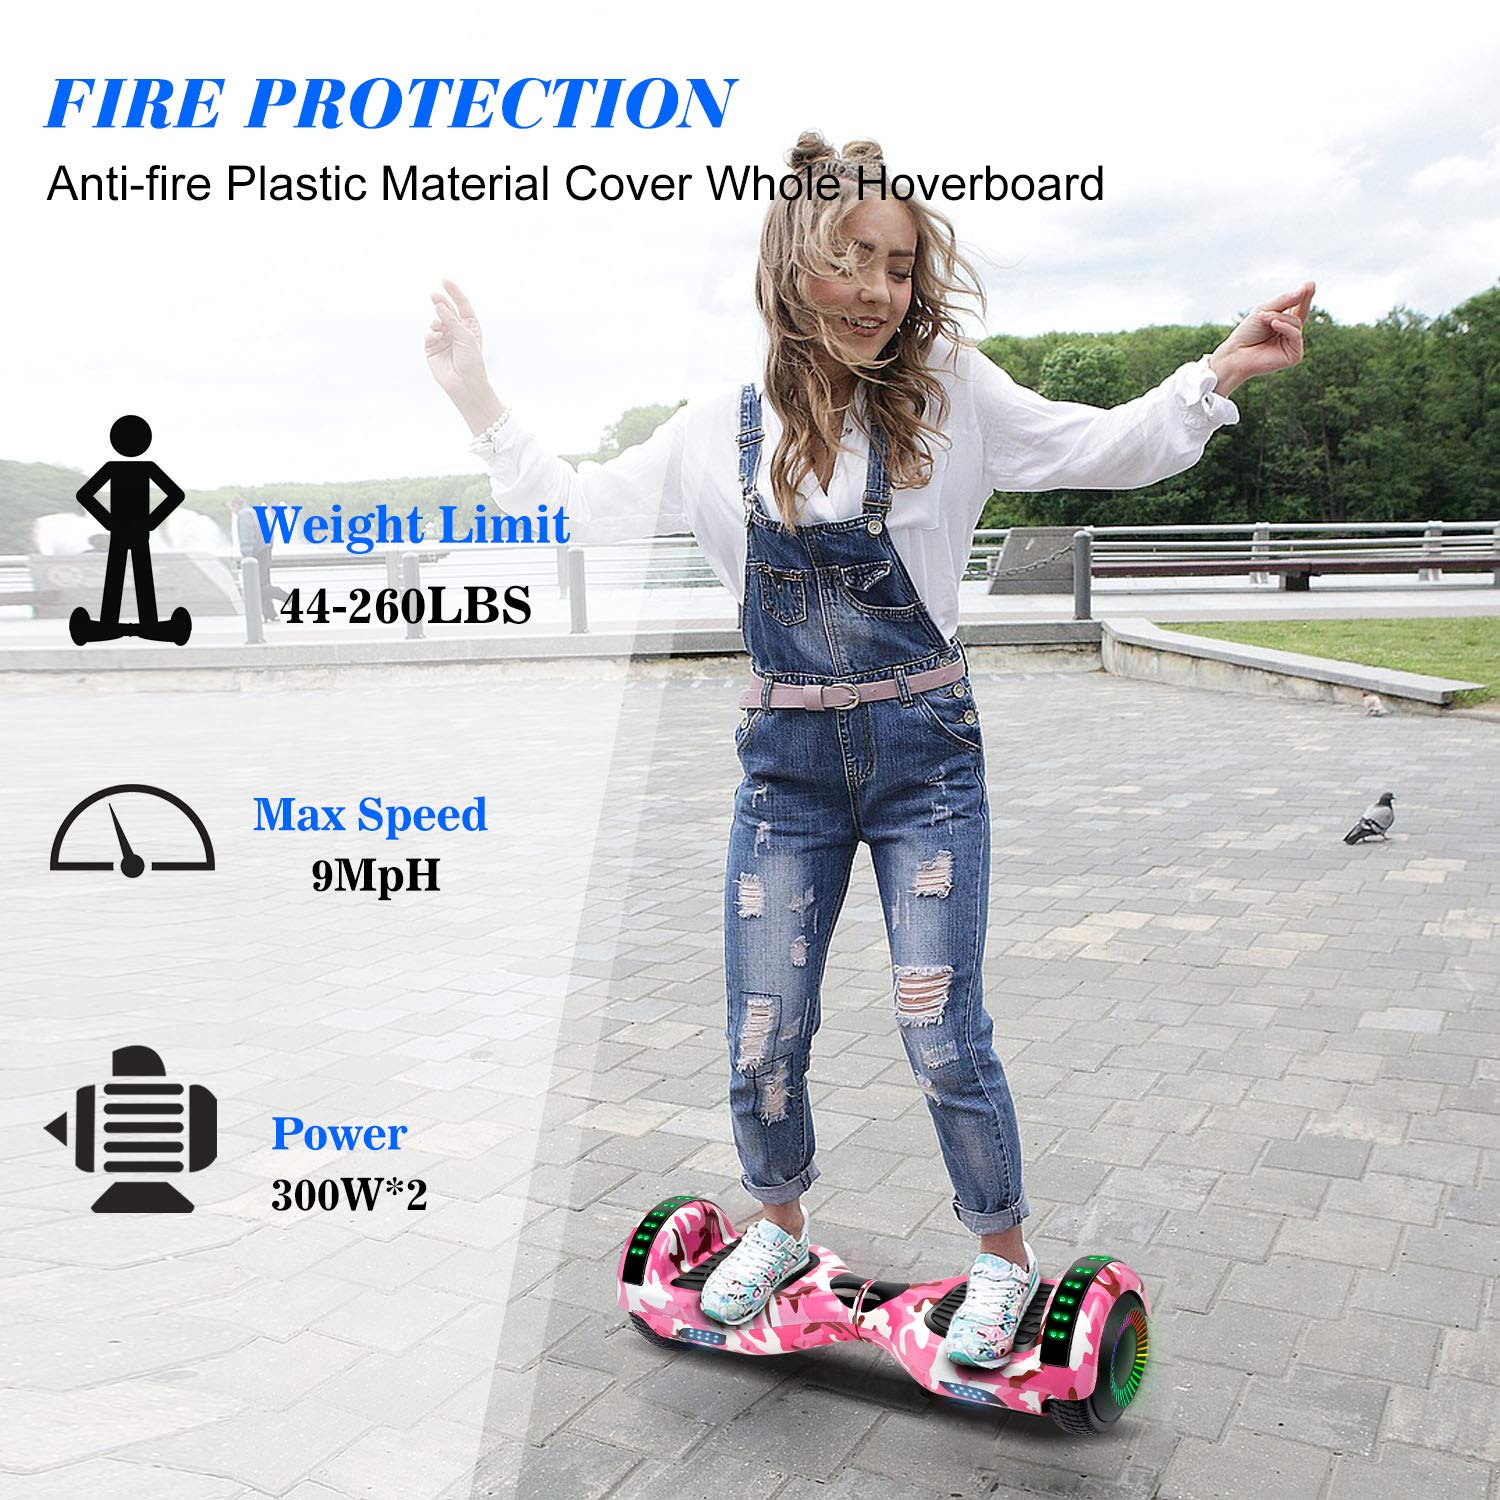 SISIGAD Hoverboard Self Balancing Scooter 6.5'' Two-Wheel Self Balancing Hoverboard with Bluetooth Speaker and LED Lights Electric Scooter for Adult Kids Gift UL 2272 Certified Fun Edition - Pink Camo by SISIGAD (Image #5)